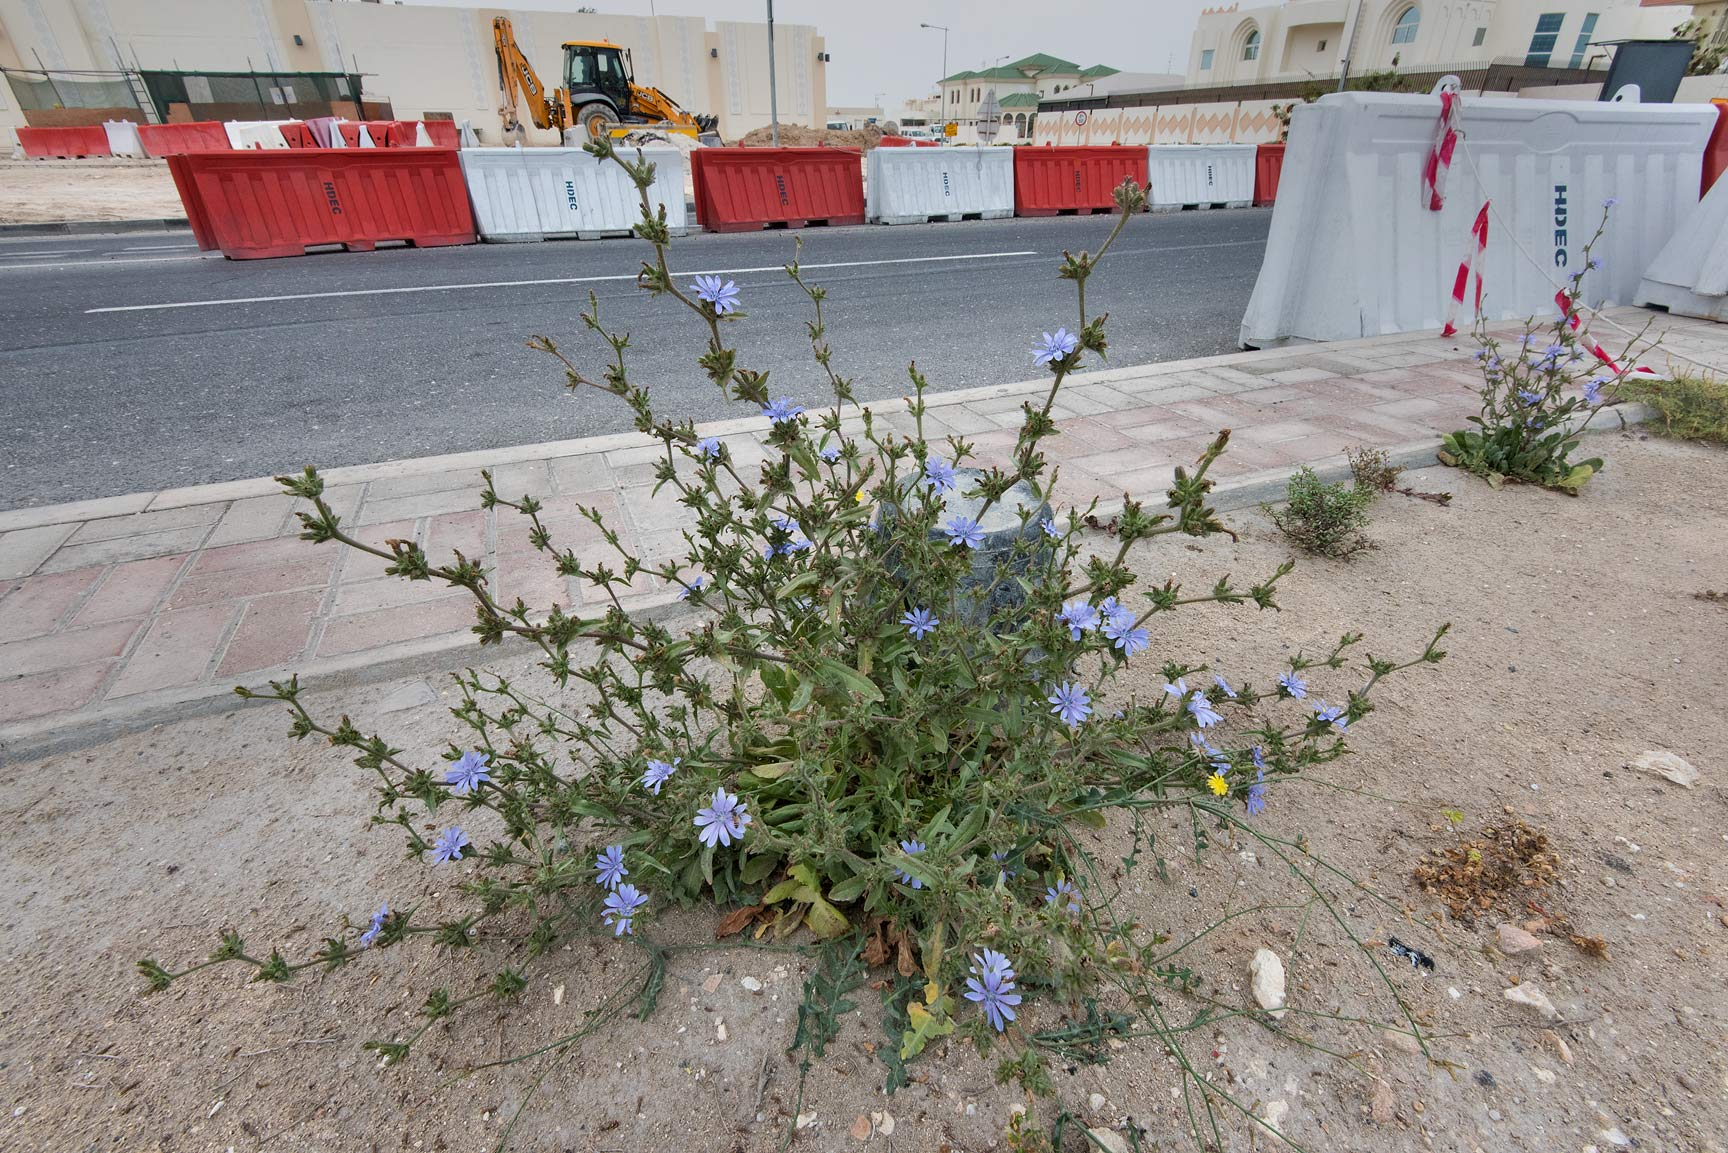 Plant of chicory (Cichorium pumilum) on the...St. in Onaiza area. Doha, Qatar